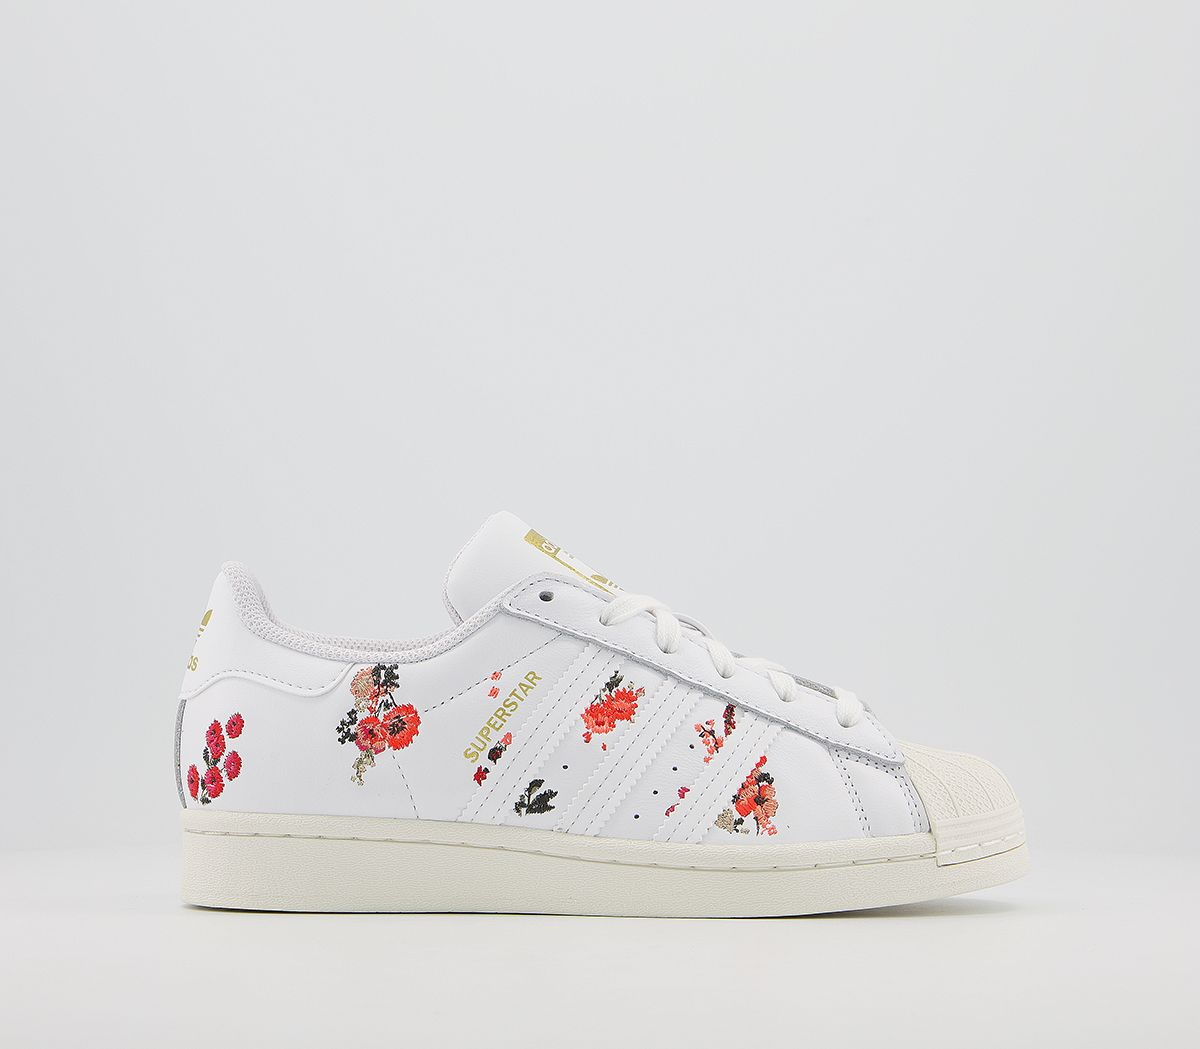 Casual ADIDAS SUPERSTAR Mujer Blanco Floral Blanco roto EG4048